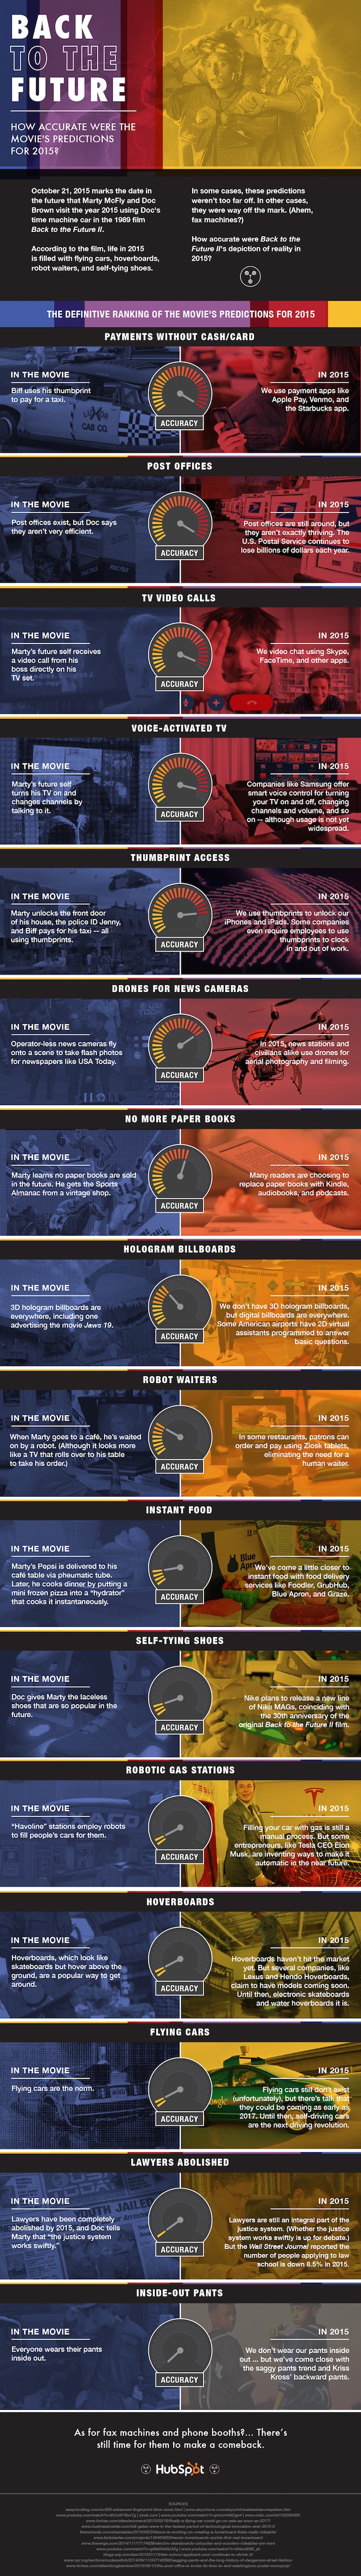 back-to-the-future-predictions-infographic